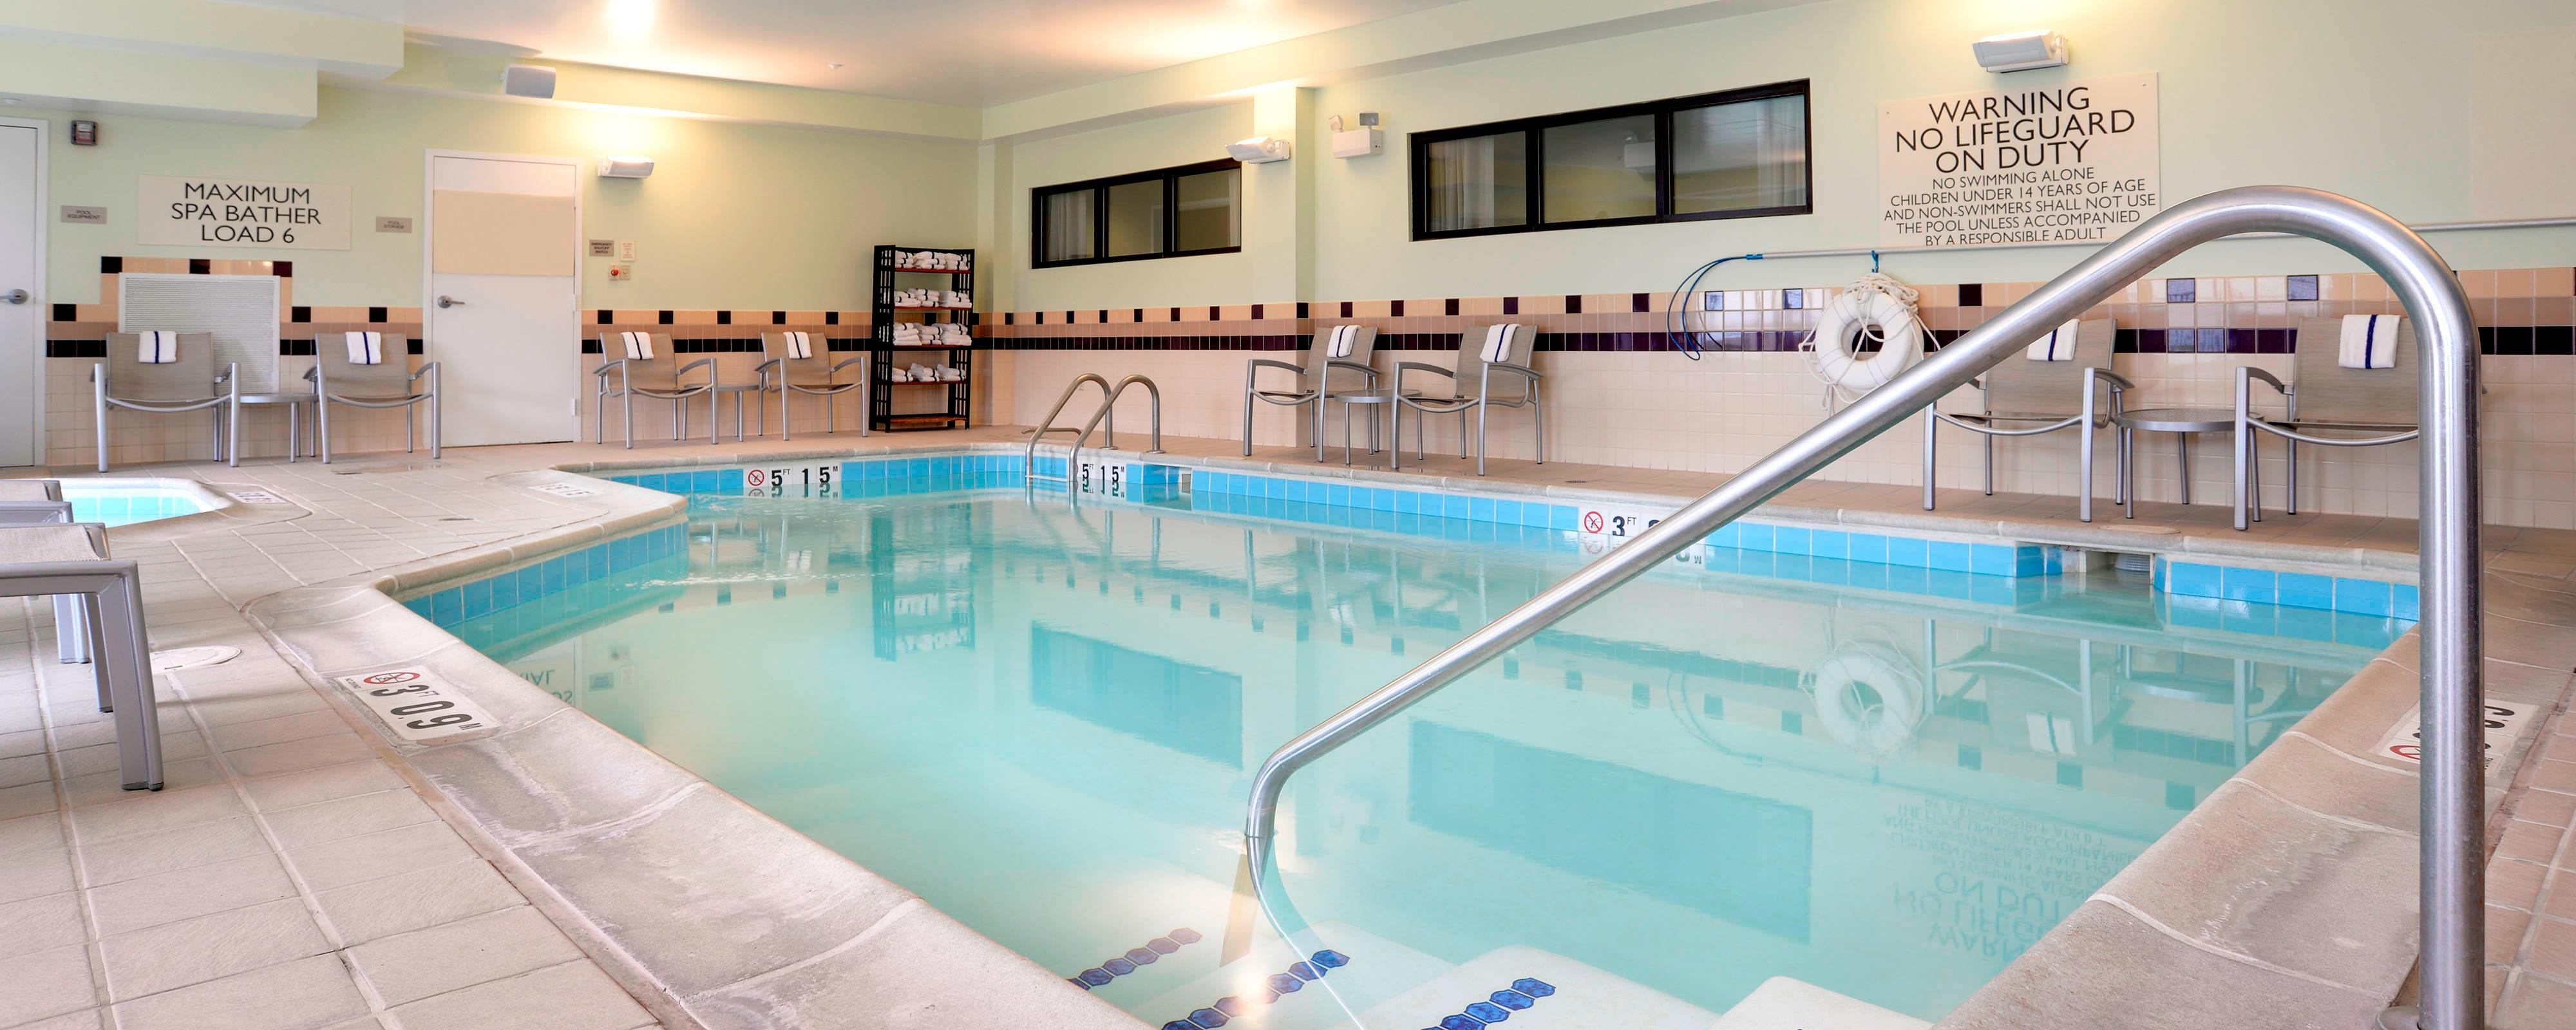 SpringHill Suites Terre Haute Indoor Pool